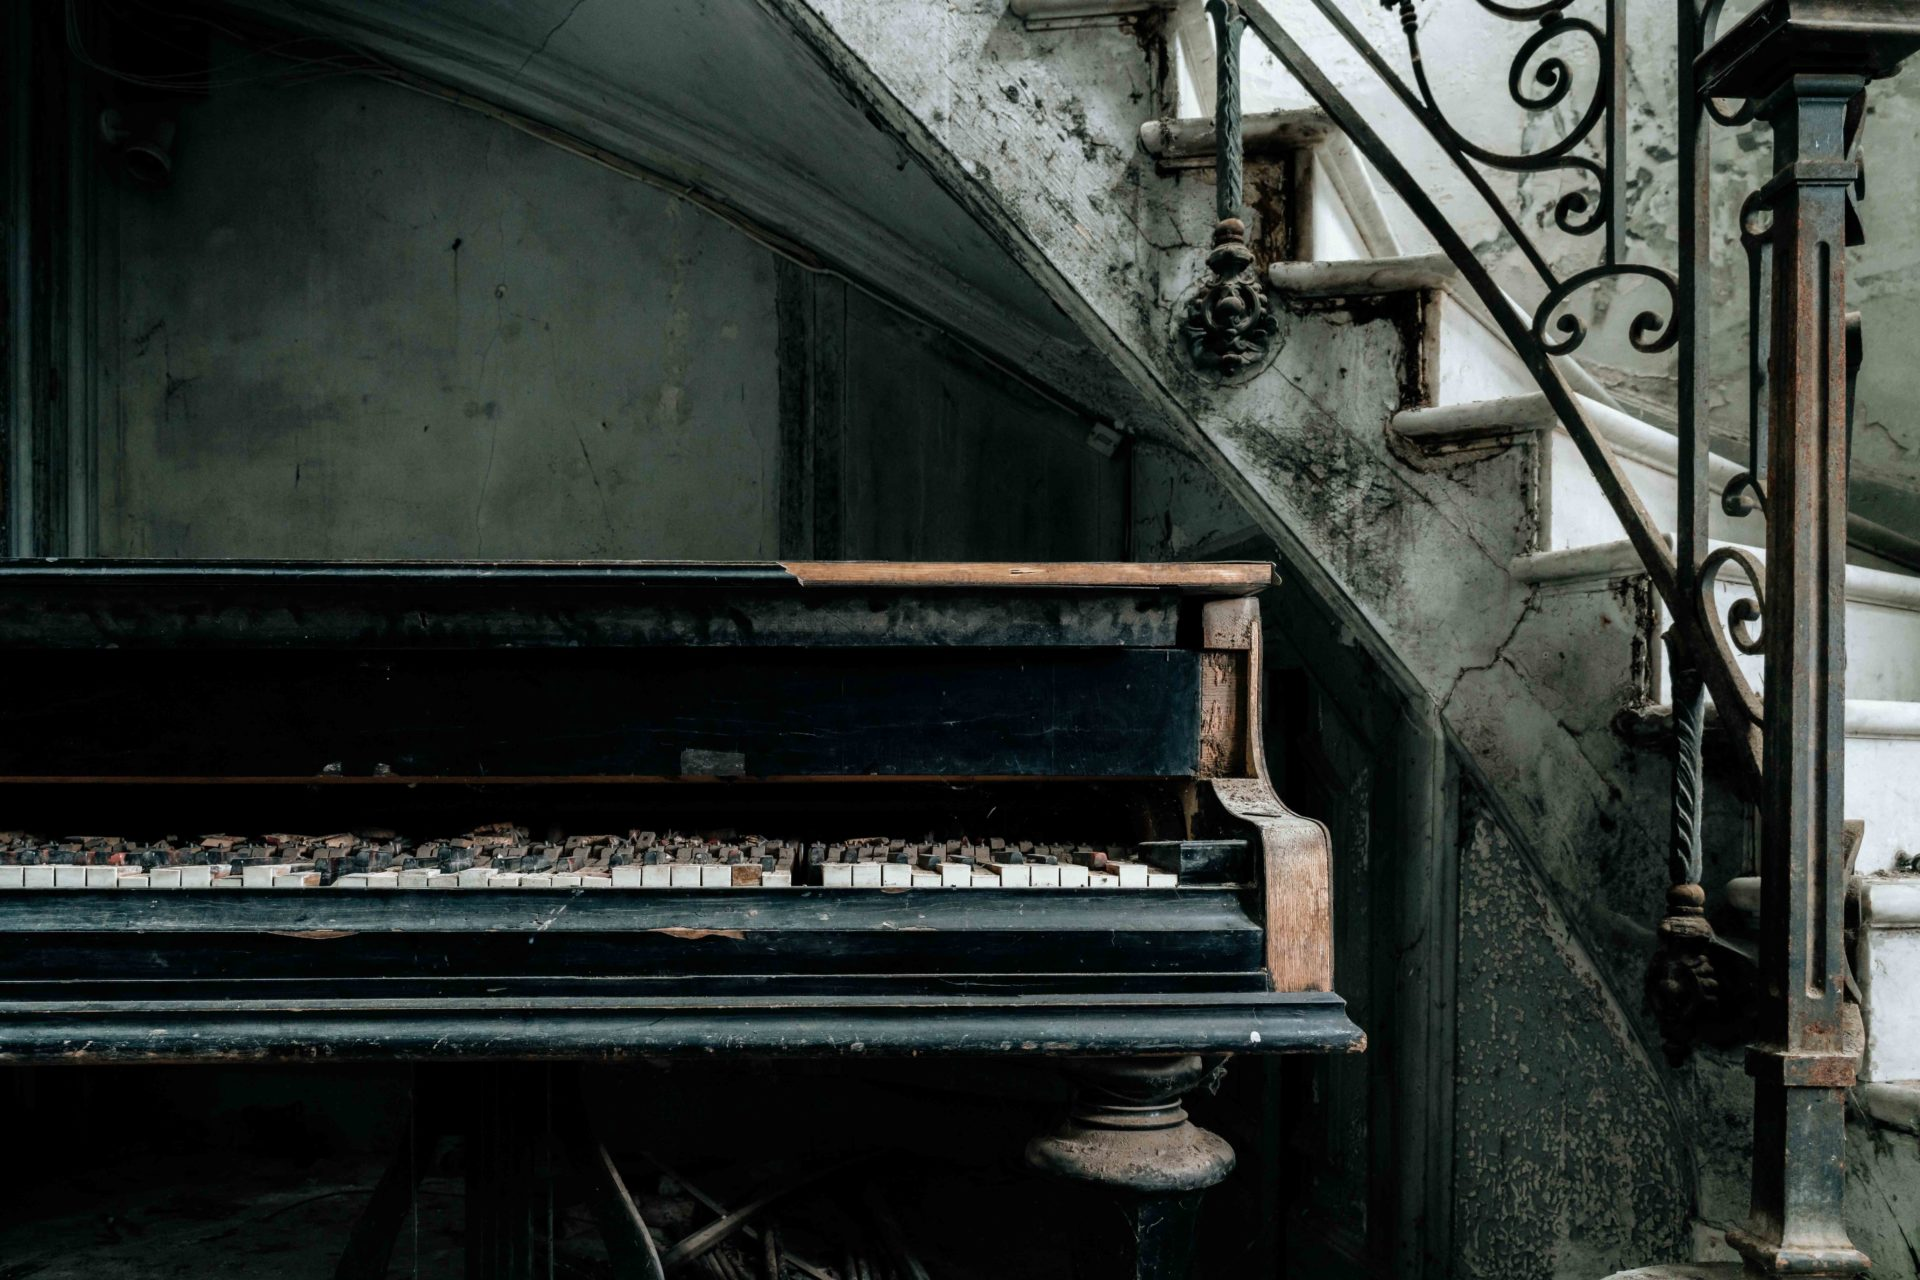 abandoned piano in France, Romain Thiery photographer, requiem pour pianos series, abandoned pianos, photographies de pianos